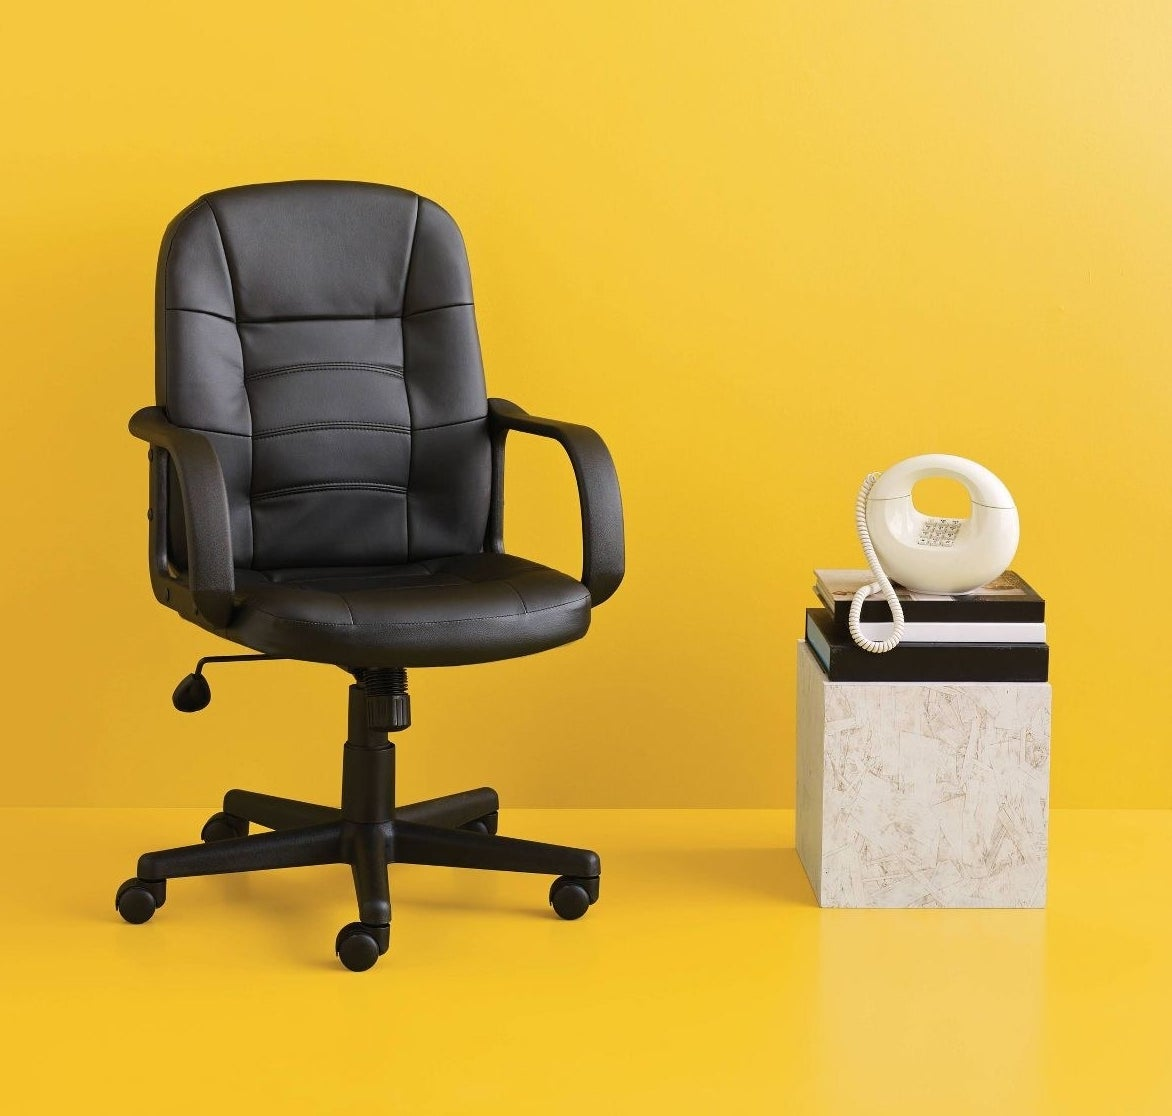 Black office chair with adjustable height next to marble table with an abstract white phone